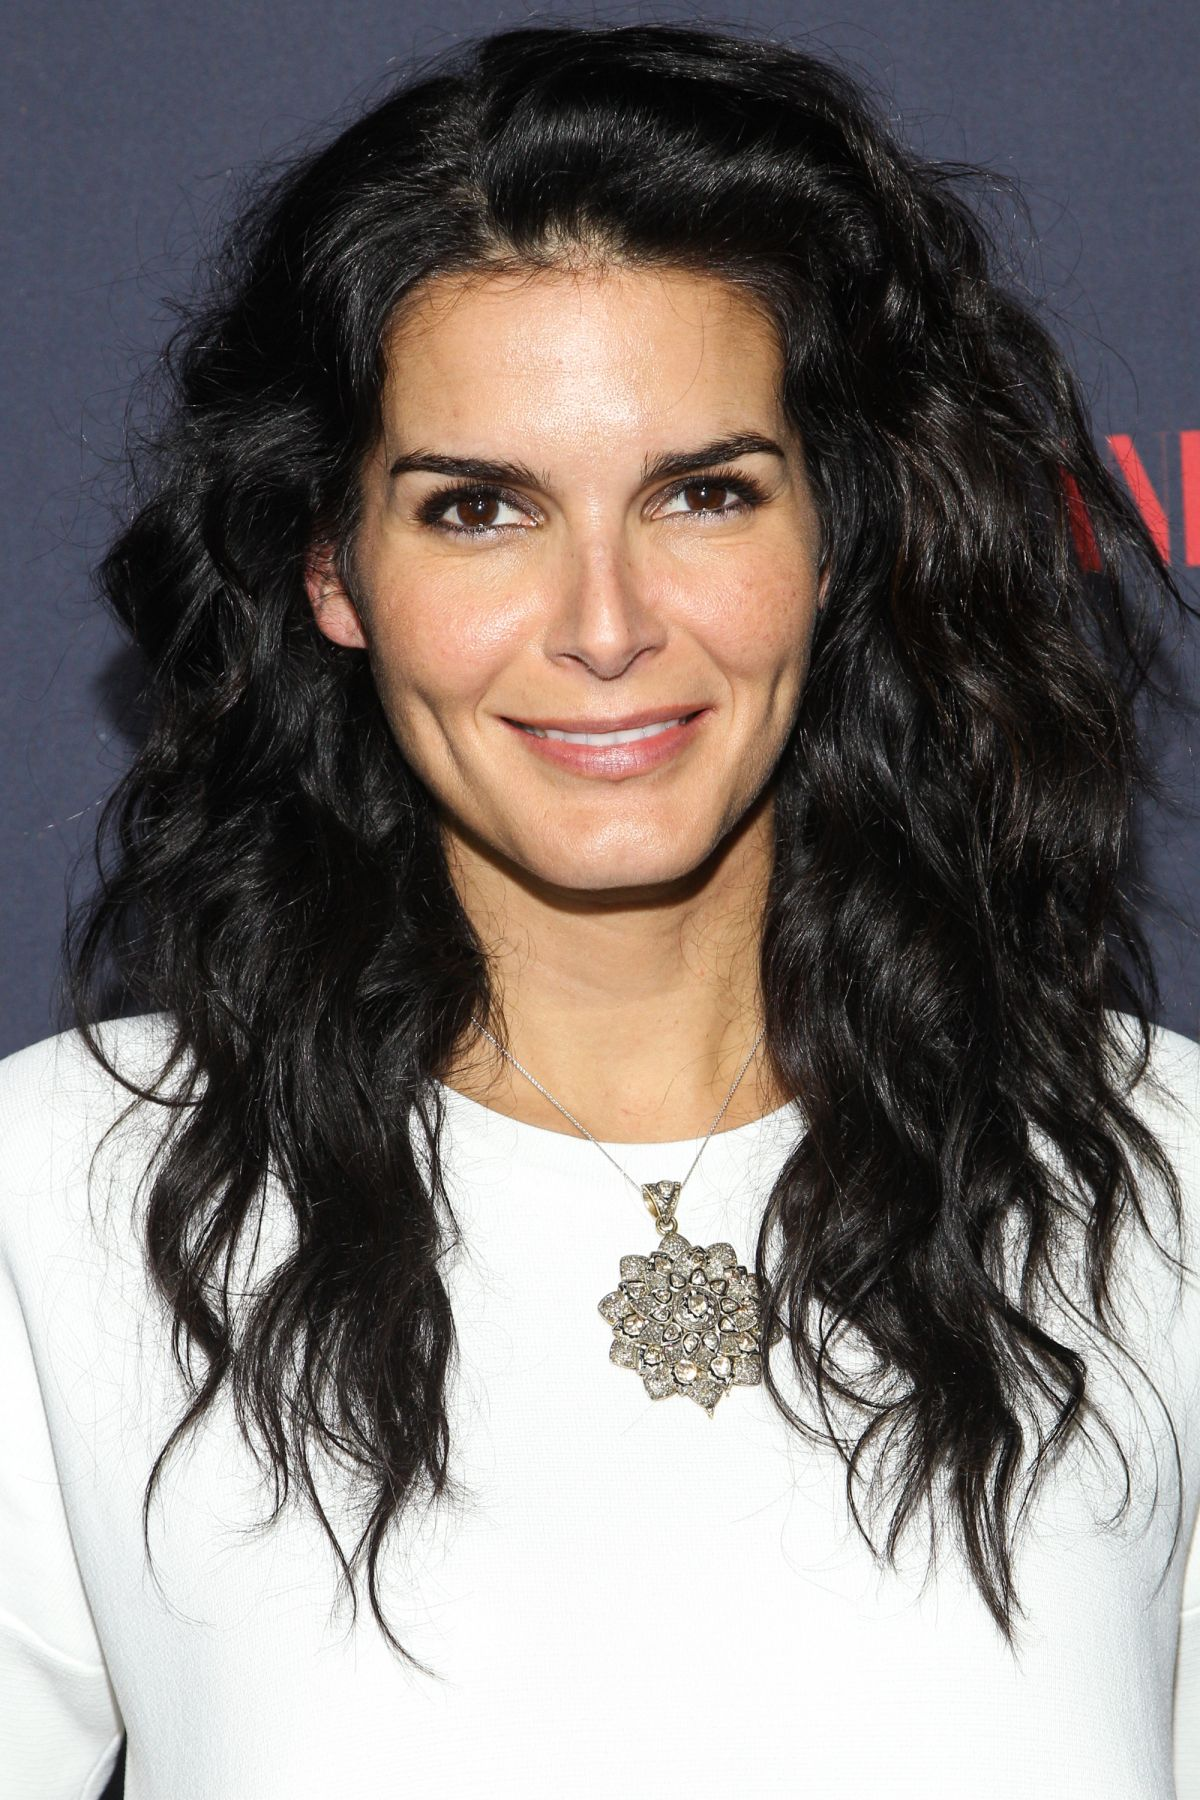 Angie Harmon At More Magazine September 2013: ANGIE HARMON At Vanity Fair Celebrate To Tommy From Zooey